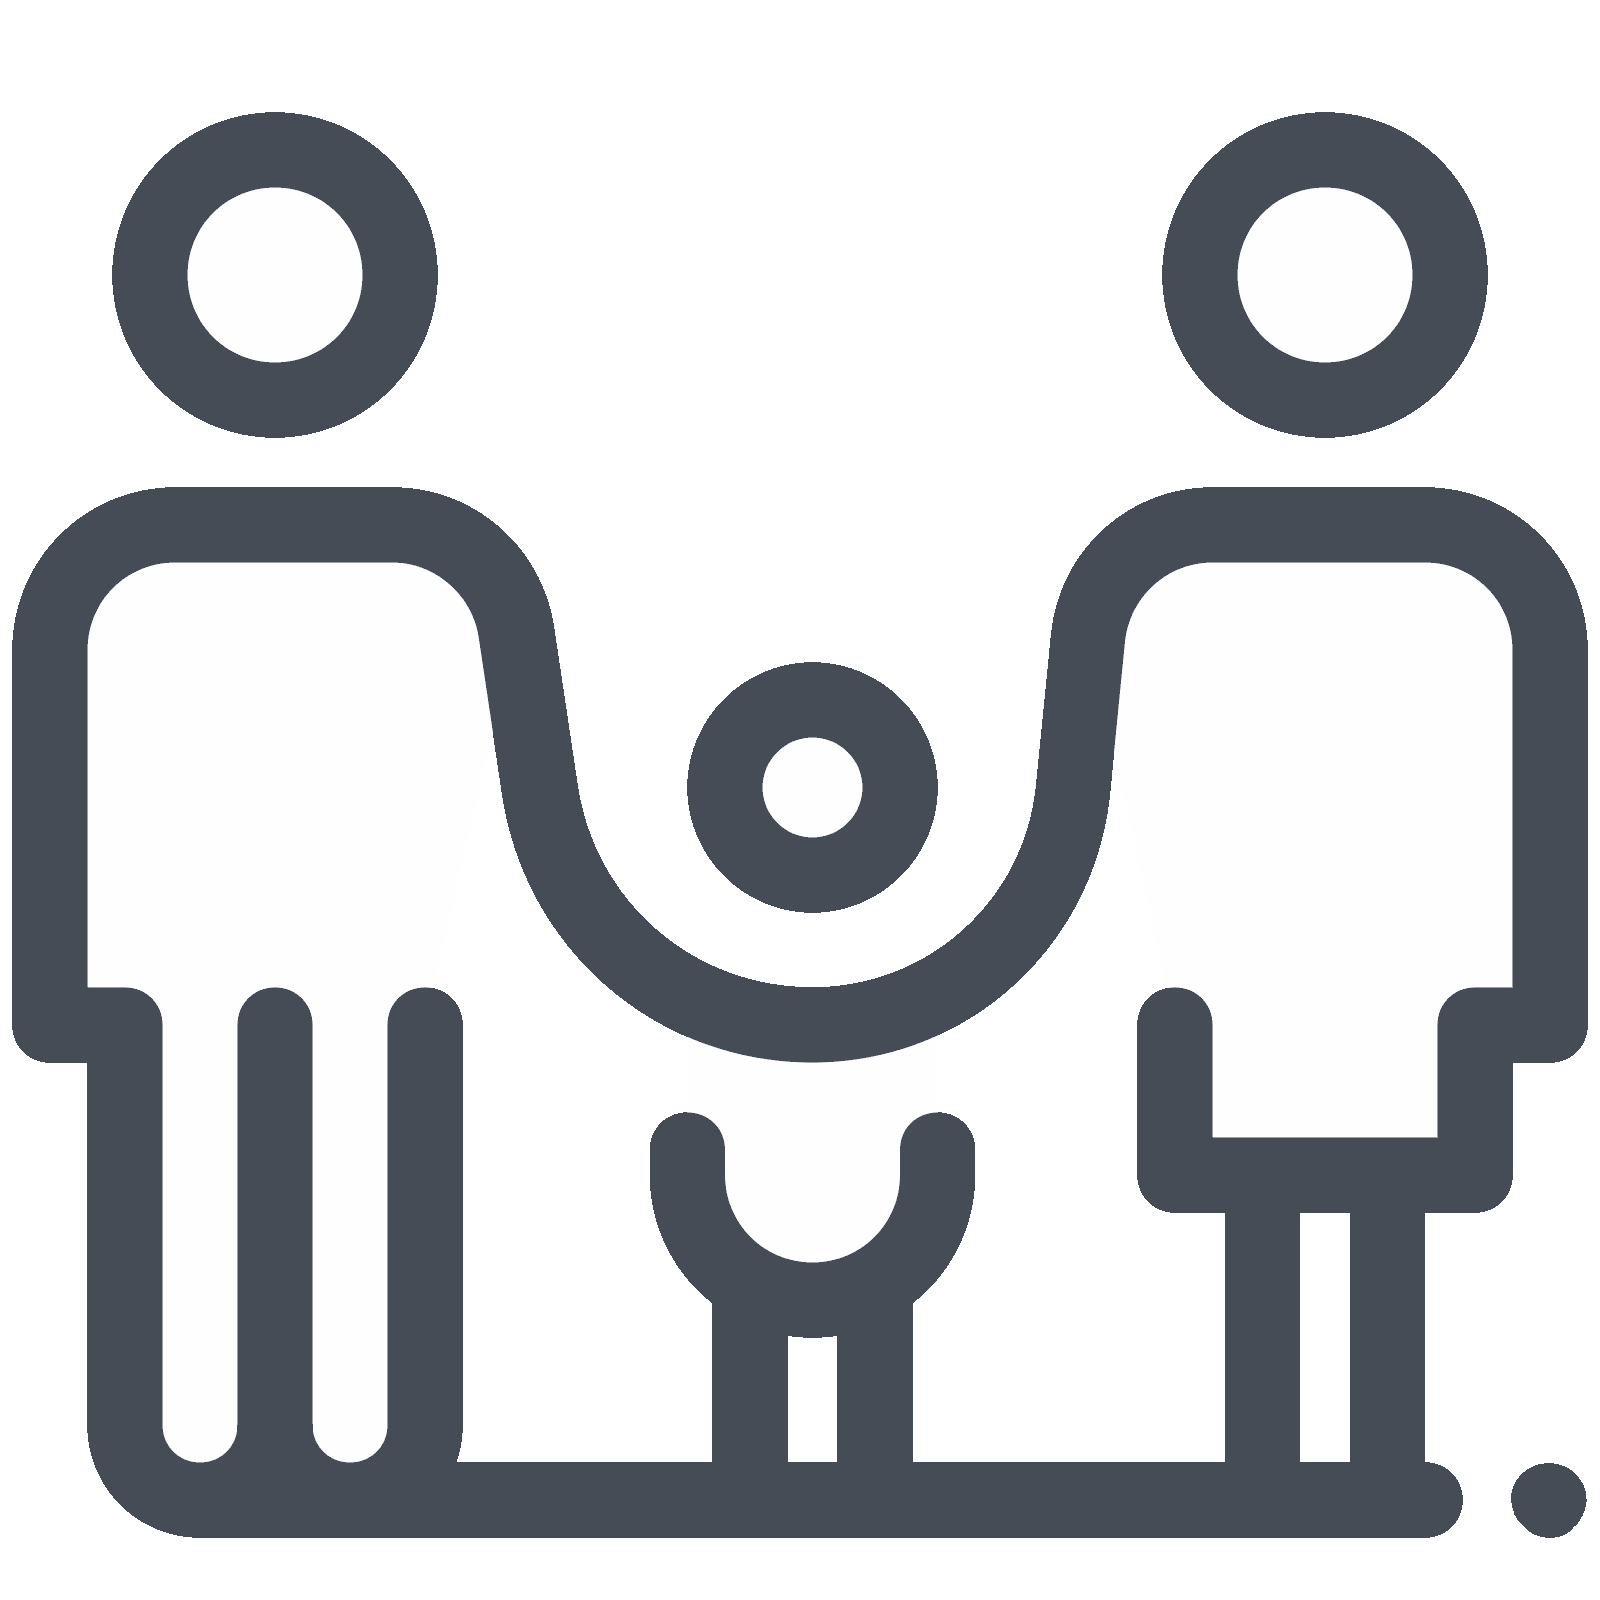 Family doodle png. Full icon free download